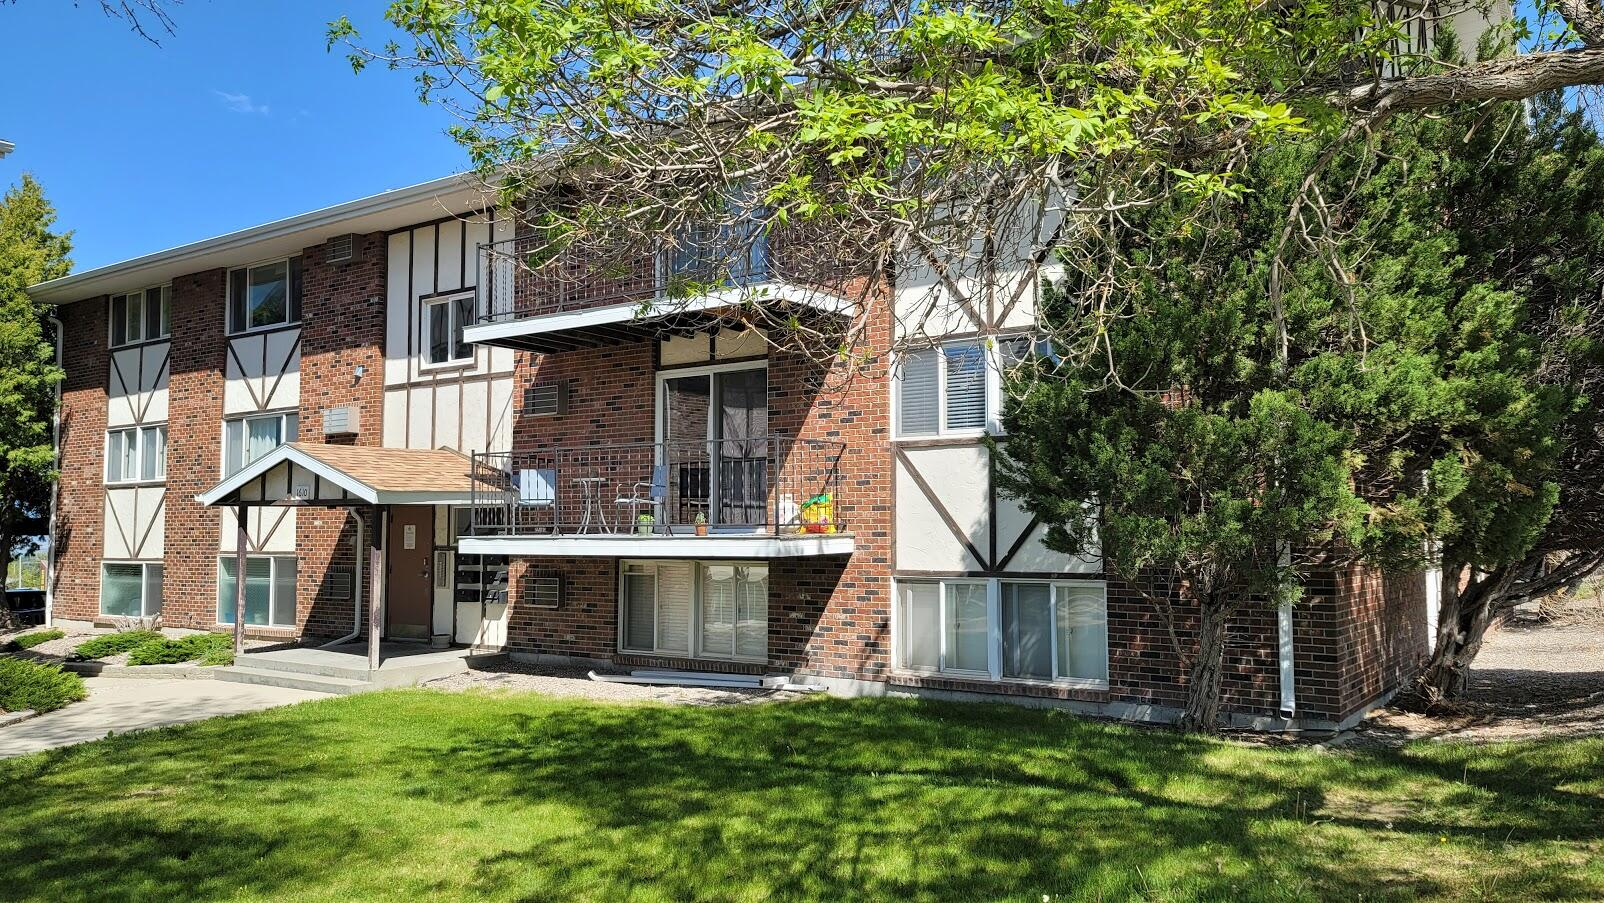 This 2 bedroom/1 bathroom ''move in ready'' condo is located on the west end of town.  Condo building has a newer roof.  HOA fee includes water, trash, yard care, snow removal & exterior maintenance. Call Dan & Cortney at 406-439-7557, or your real estate professional.